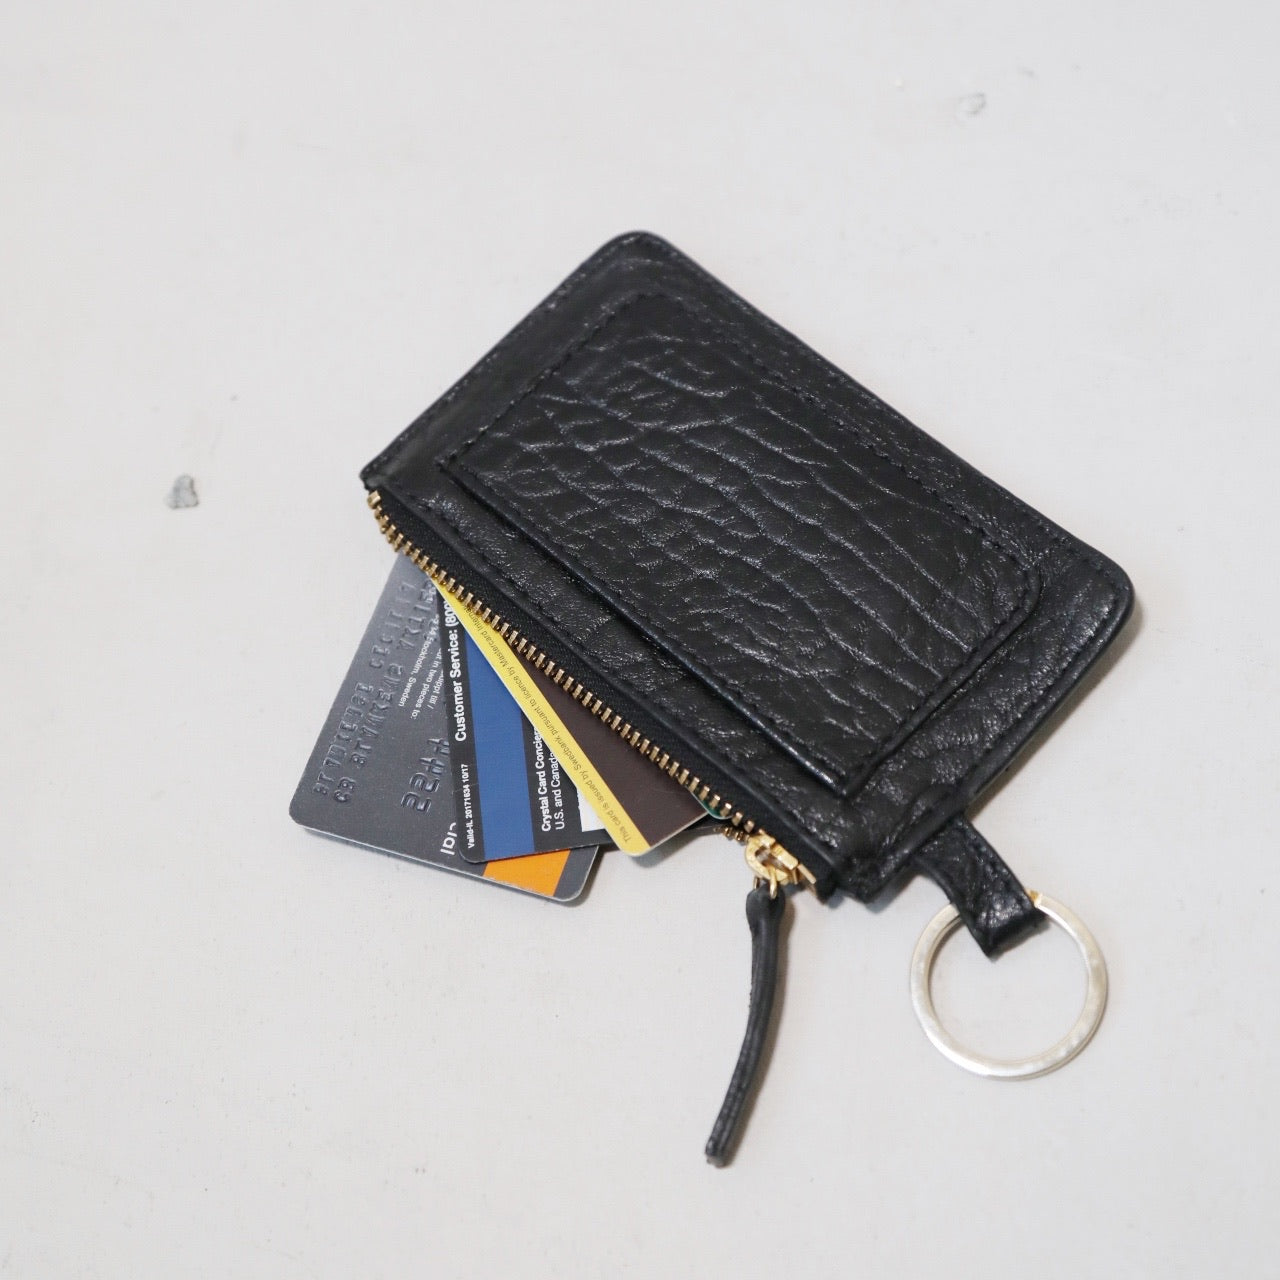 PRE-ORDER THE MADRID PHONE CARD KEY HOLDER